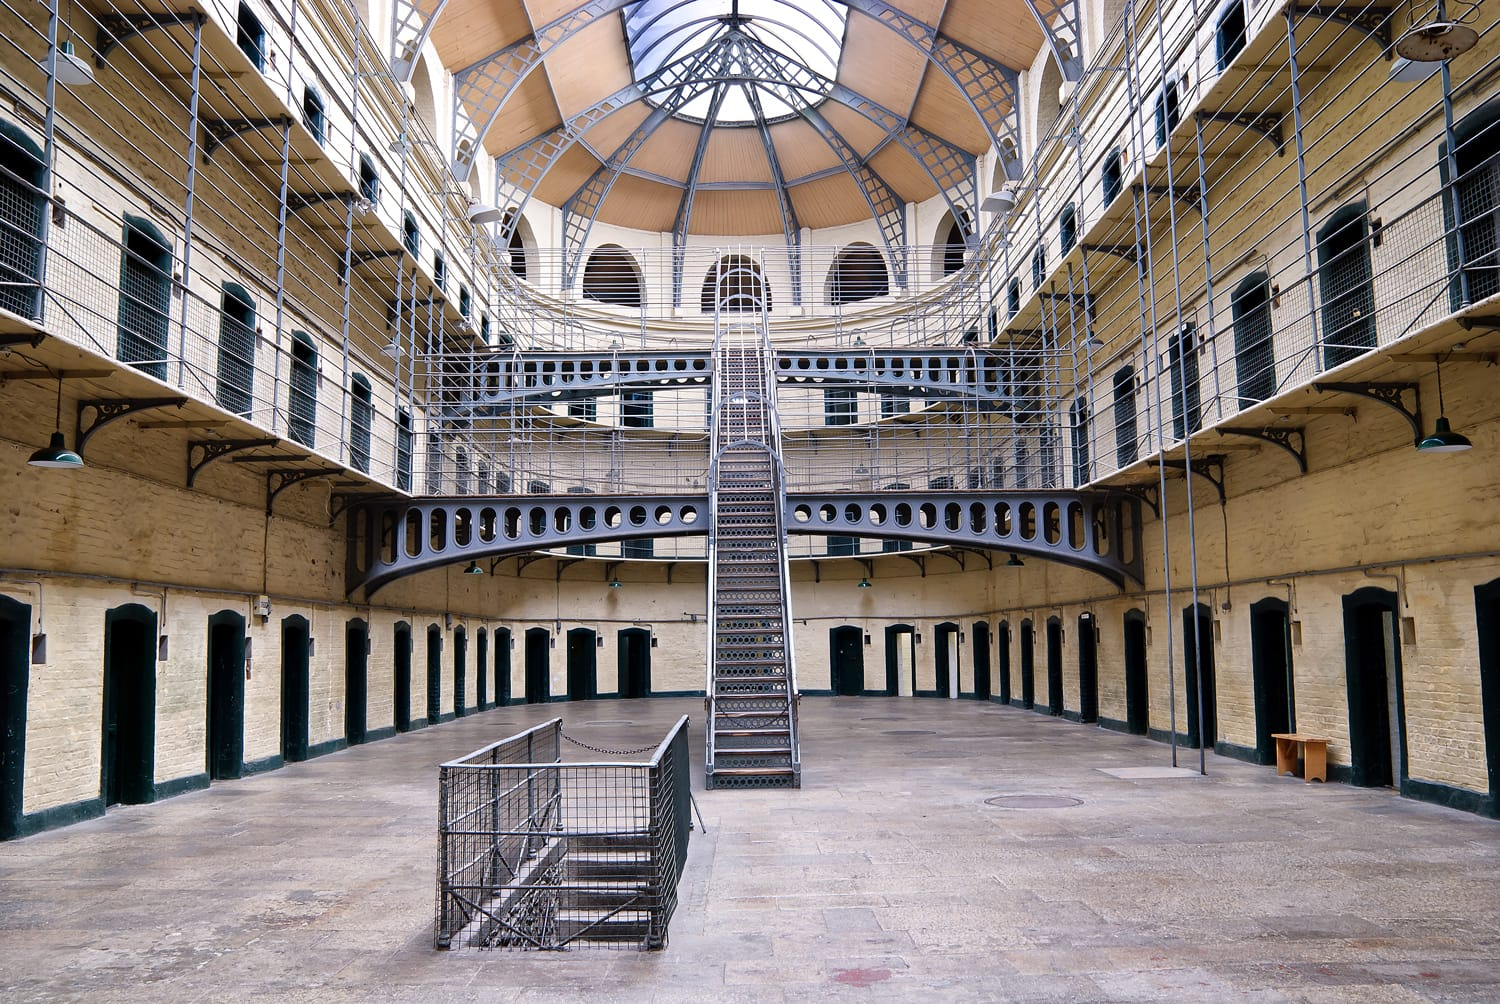 Kilmainham Gaol (Irish: Príosún Chill Mhaighneann), first built in 1796, is a former prison, located in Kilmainham in Dublin, and played an important part in Irish history.